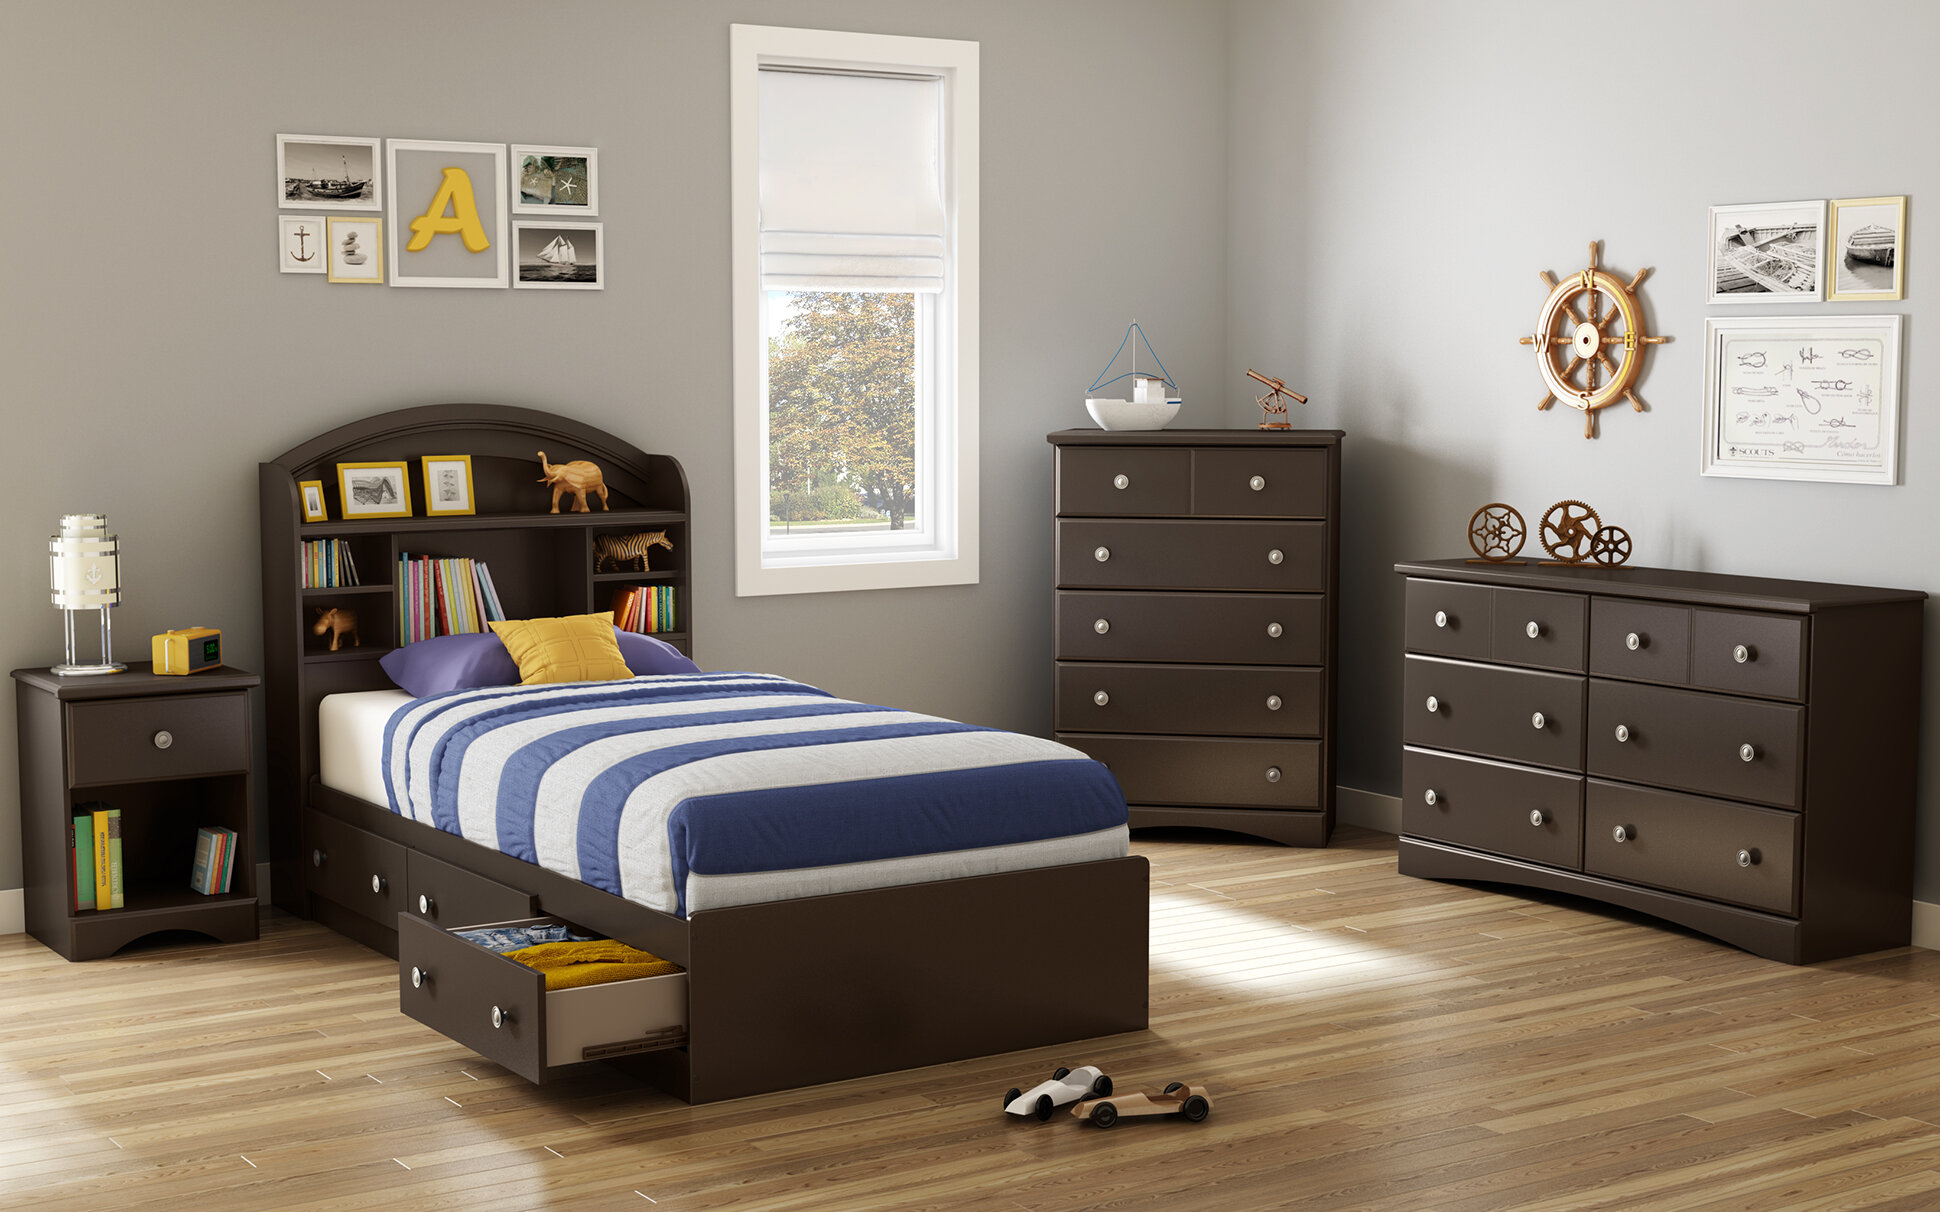 Charmant Morning Dew Platform Configurable Bedroom Set